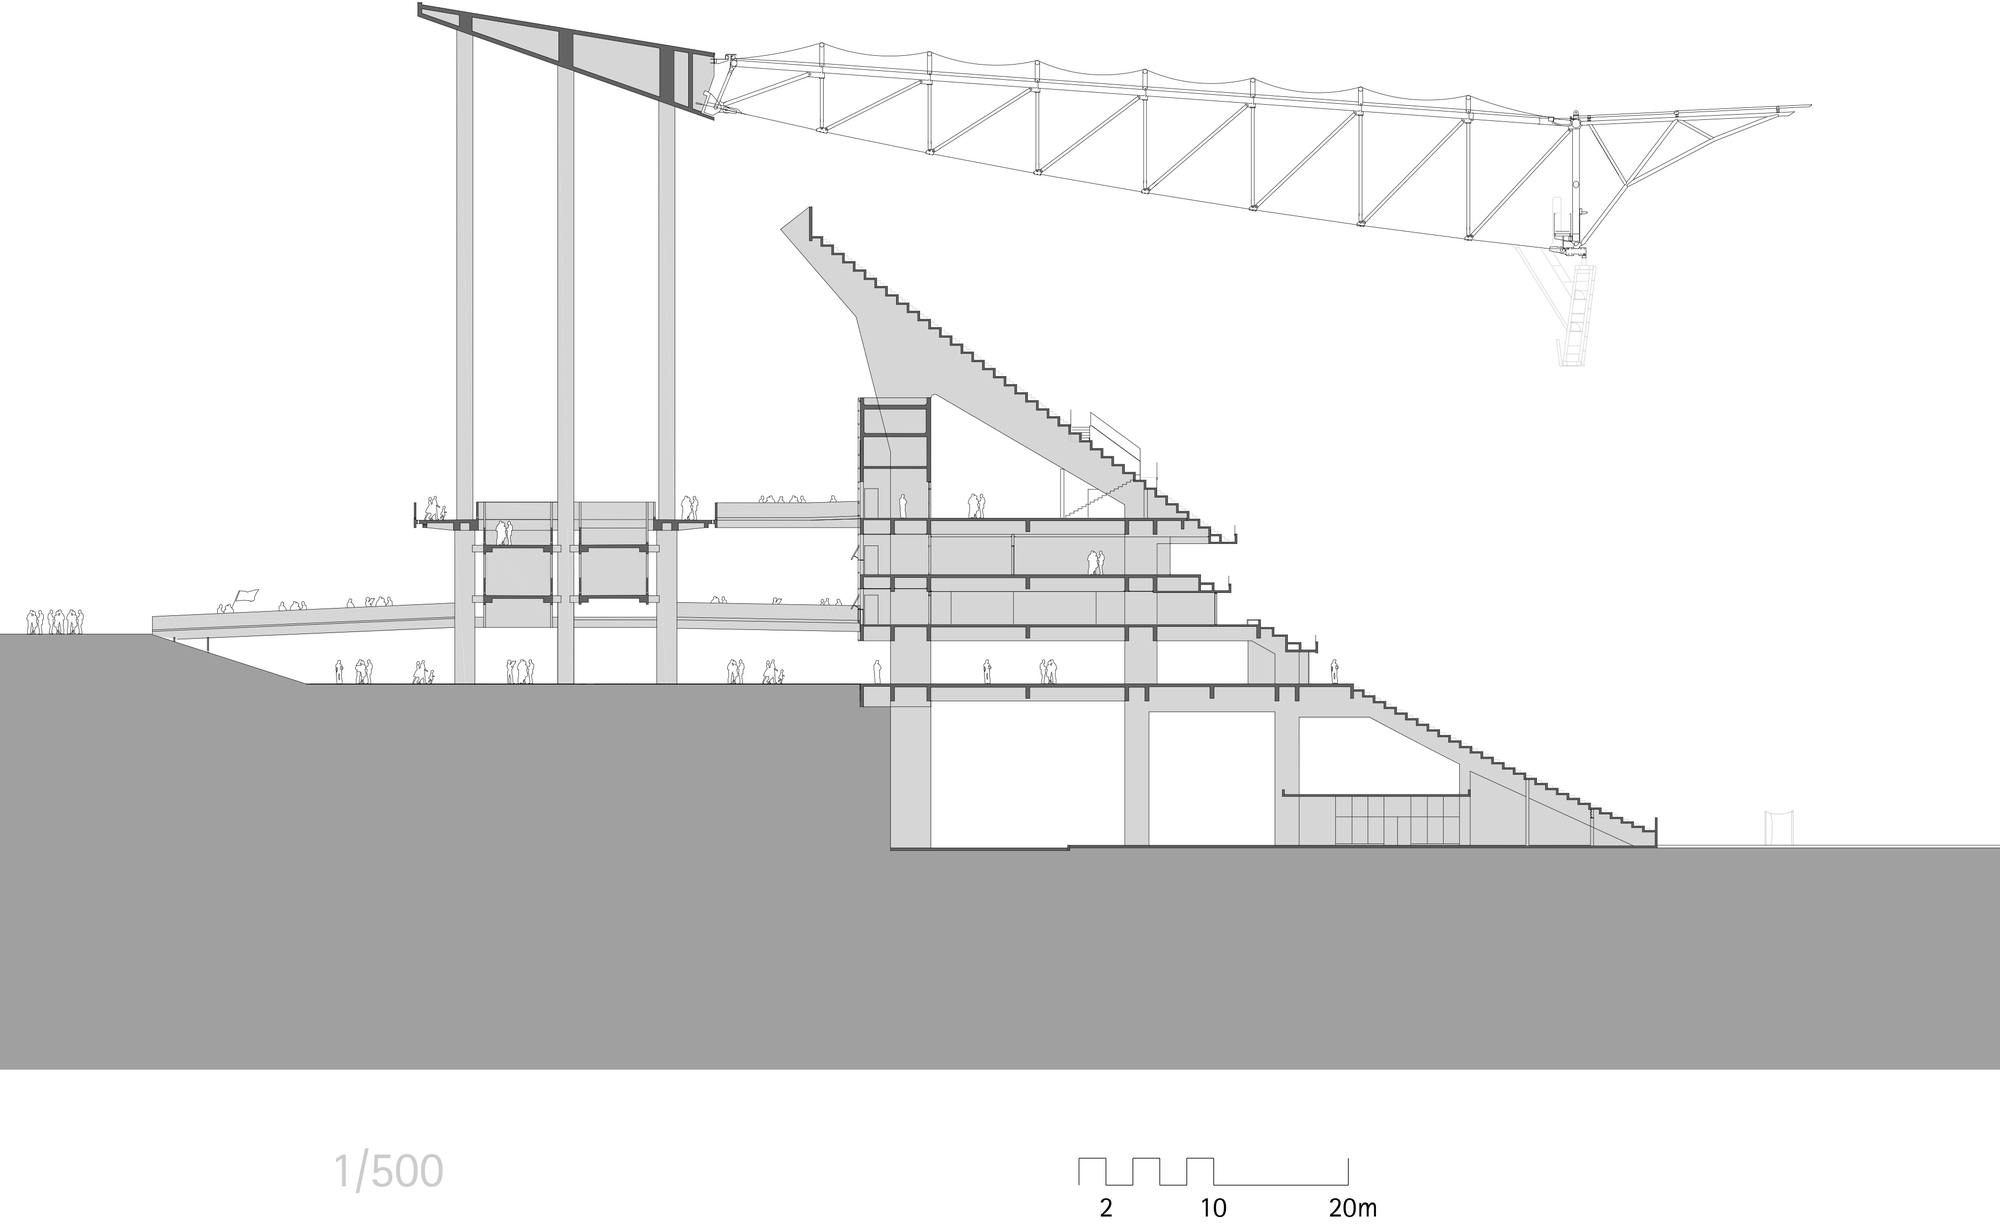 Architecture Drawing Png 53c37d92c07a80aa890000c7_brasilia-national-stadium-gmp